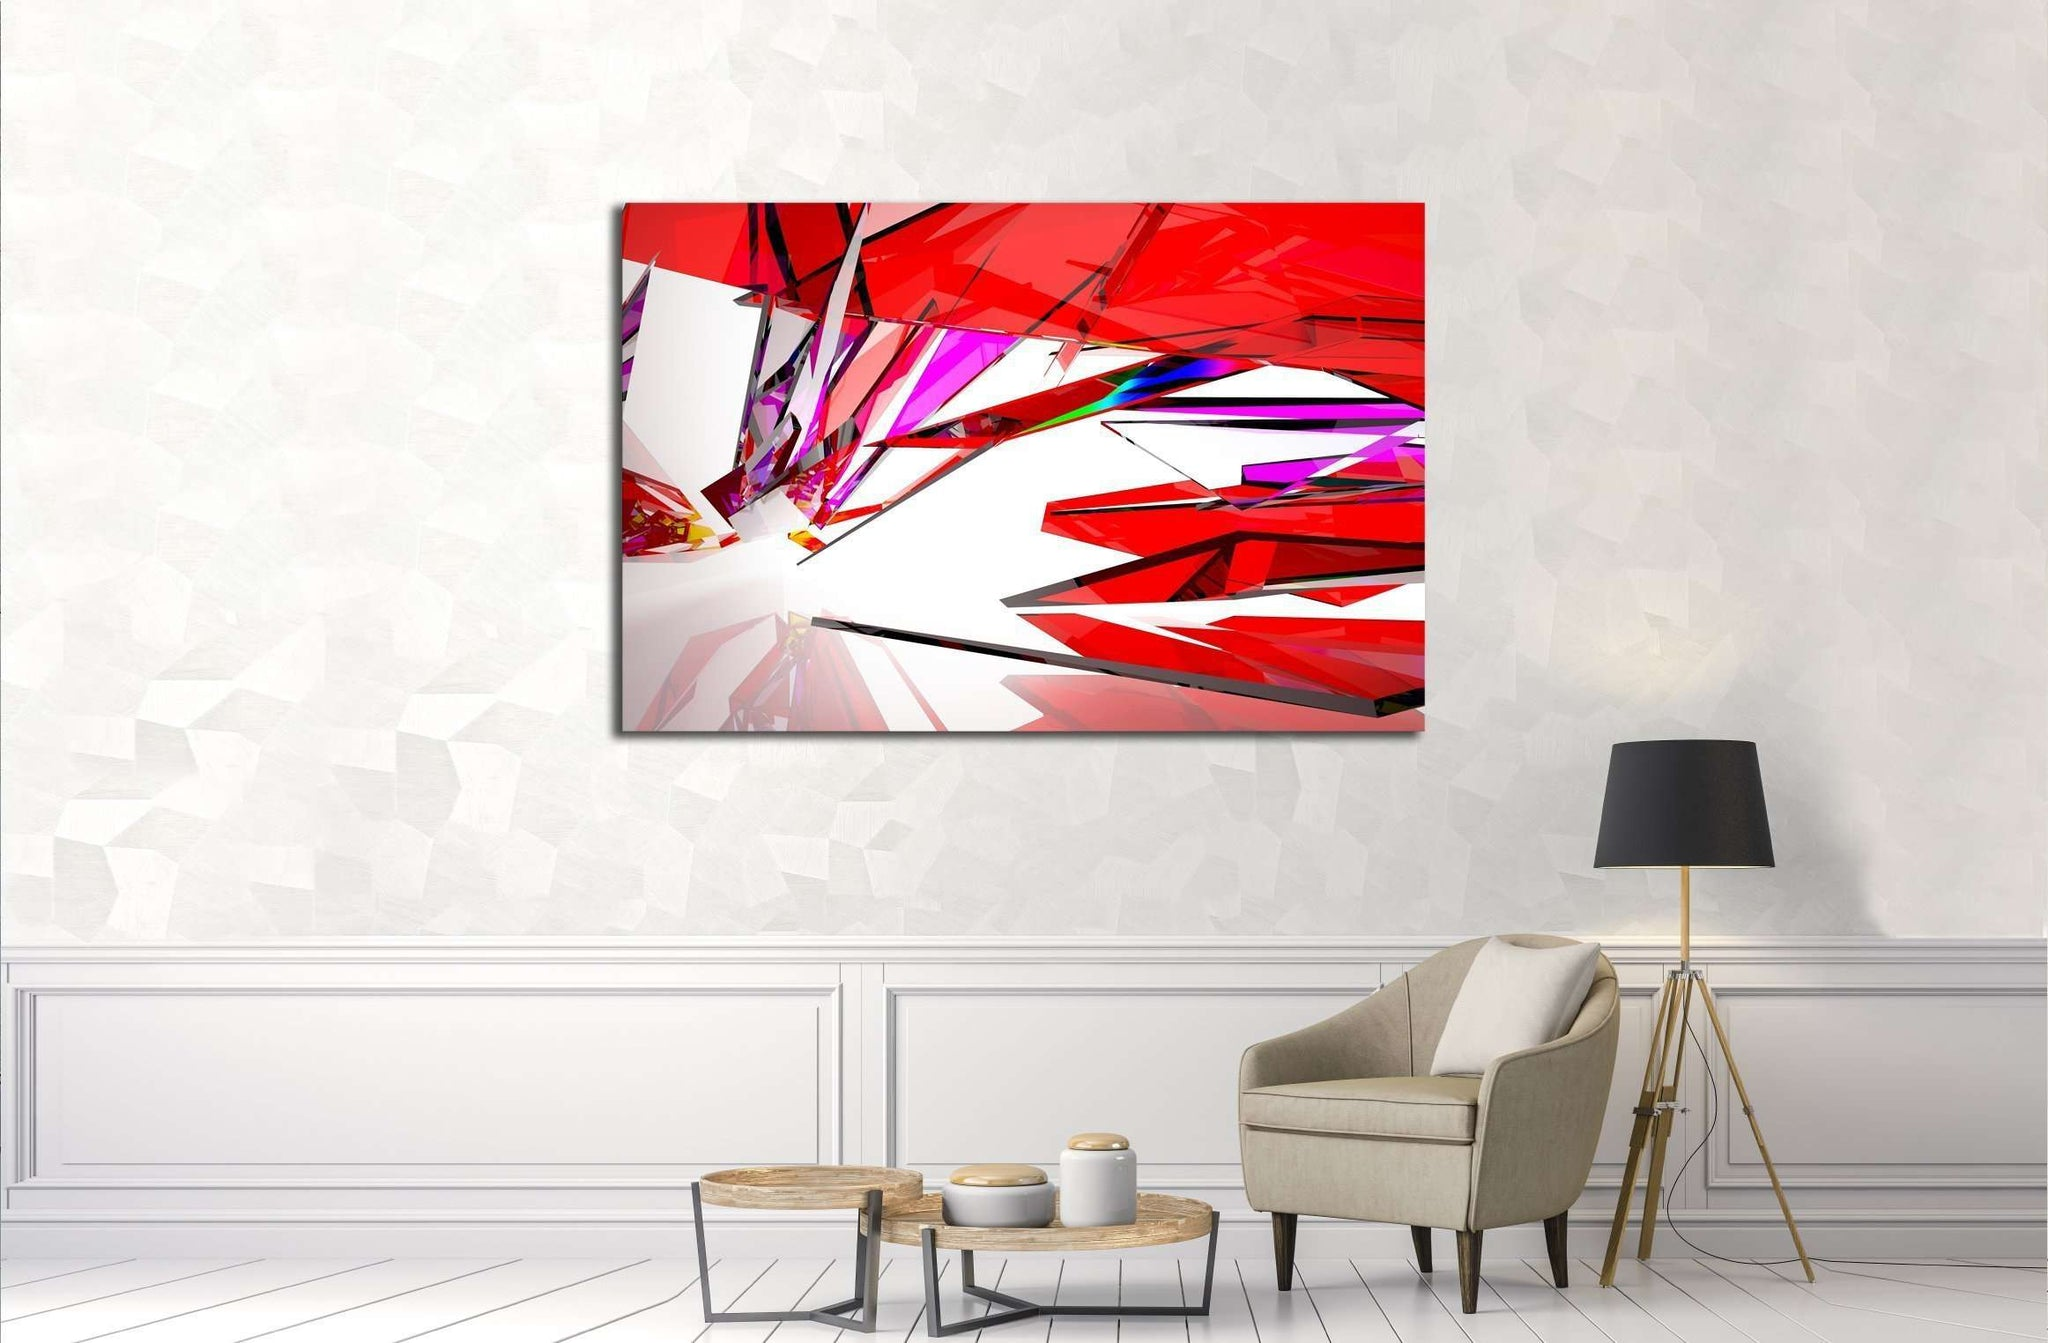 abstract architectural interior with gradient geometric glass sculpture with black lines №2568 Ready to Hang Canvas Print